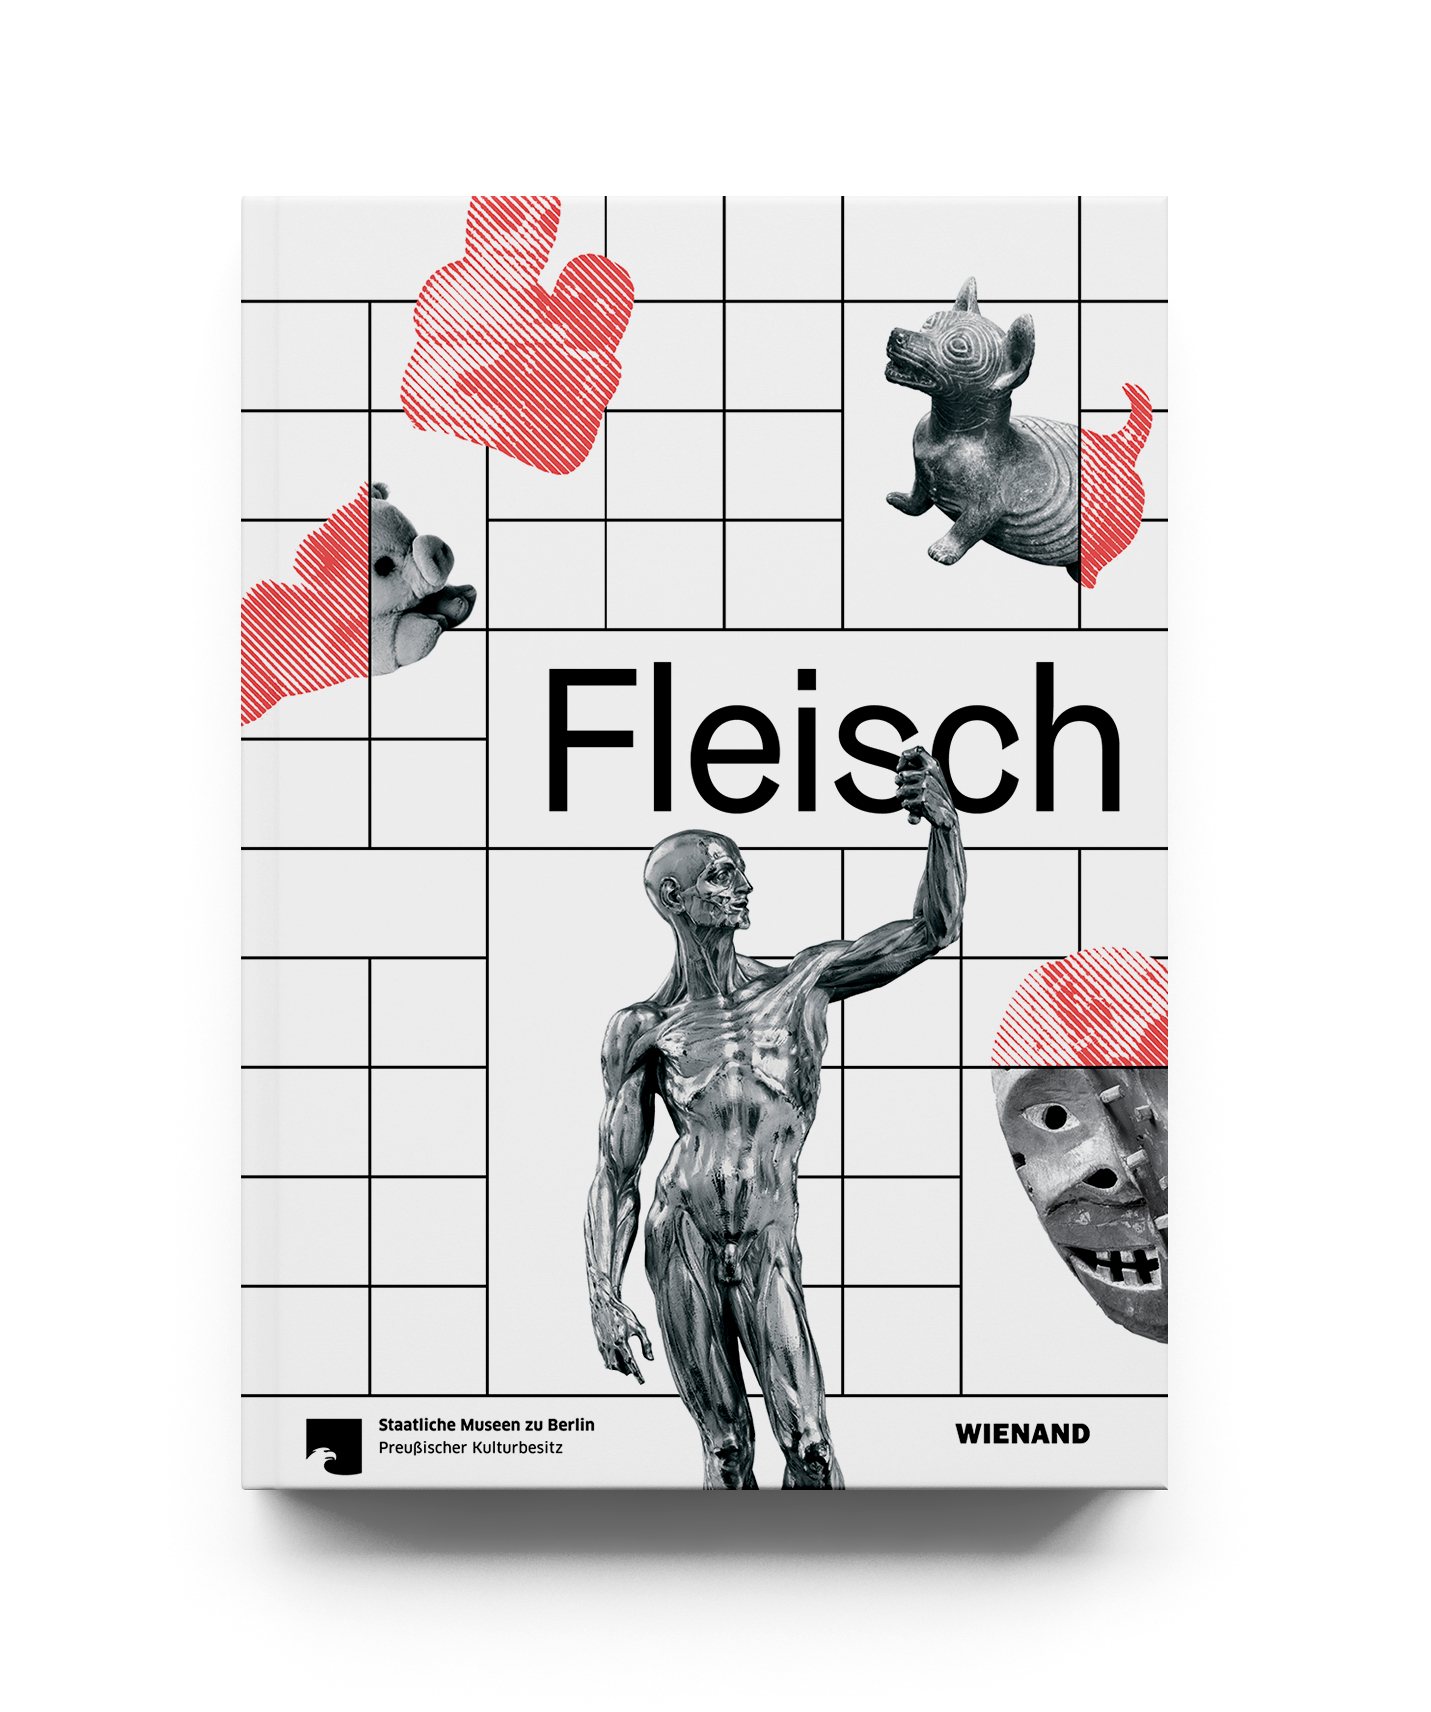 ludwig janoff — visual design fleisch